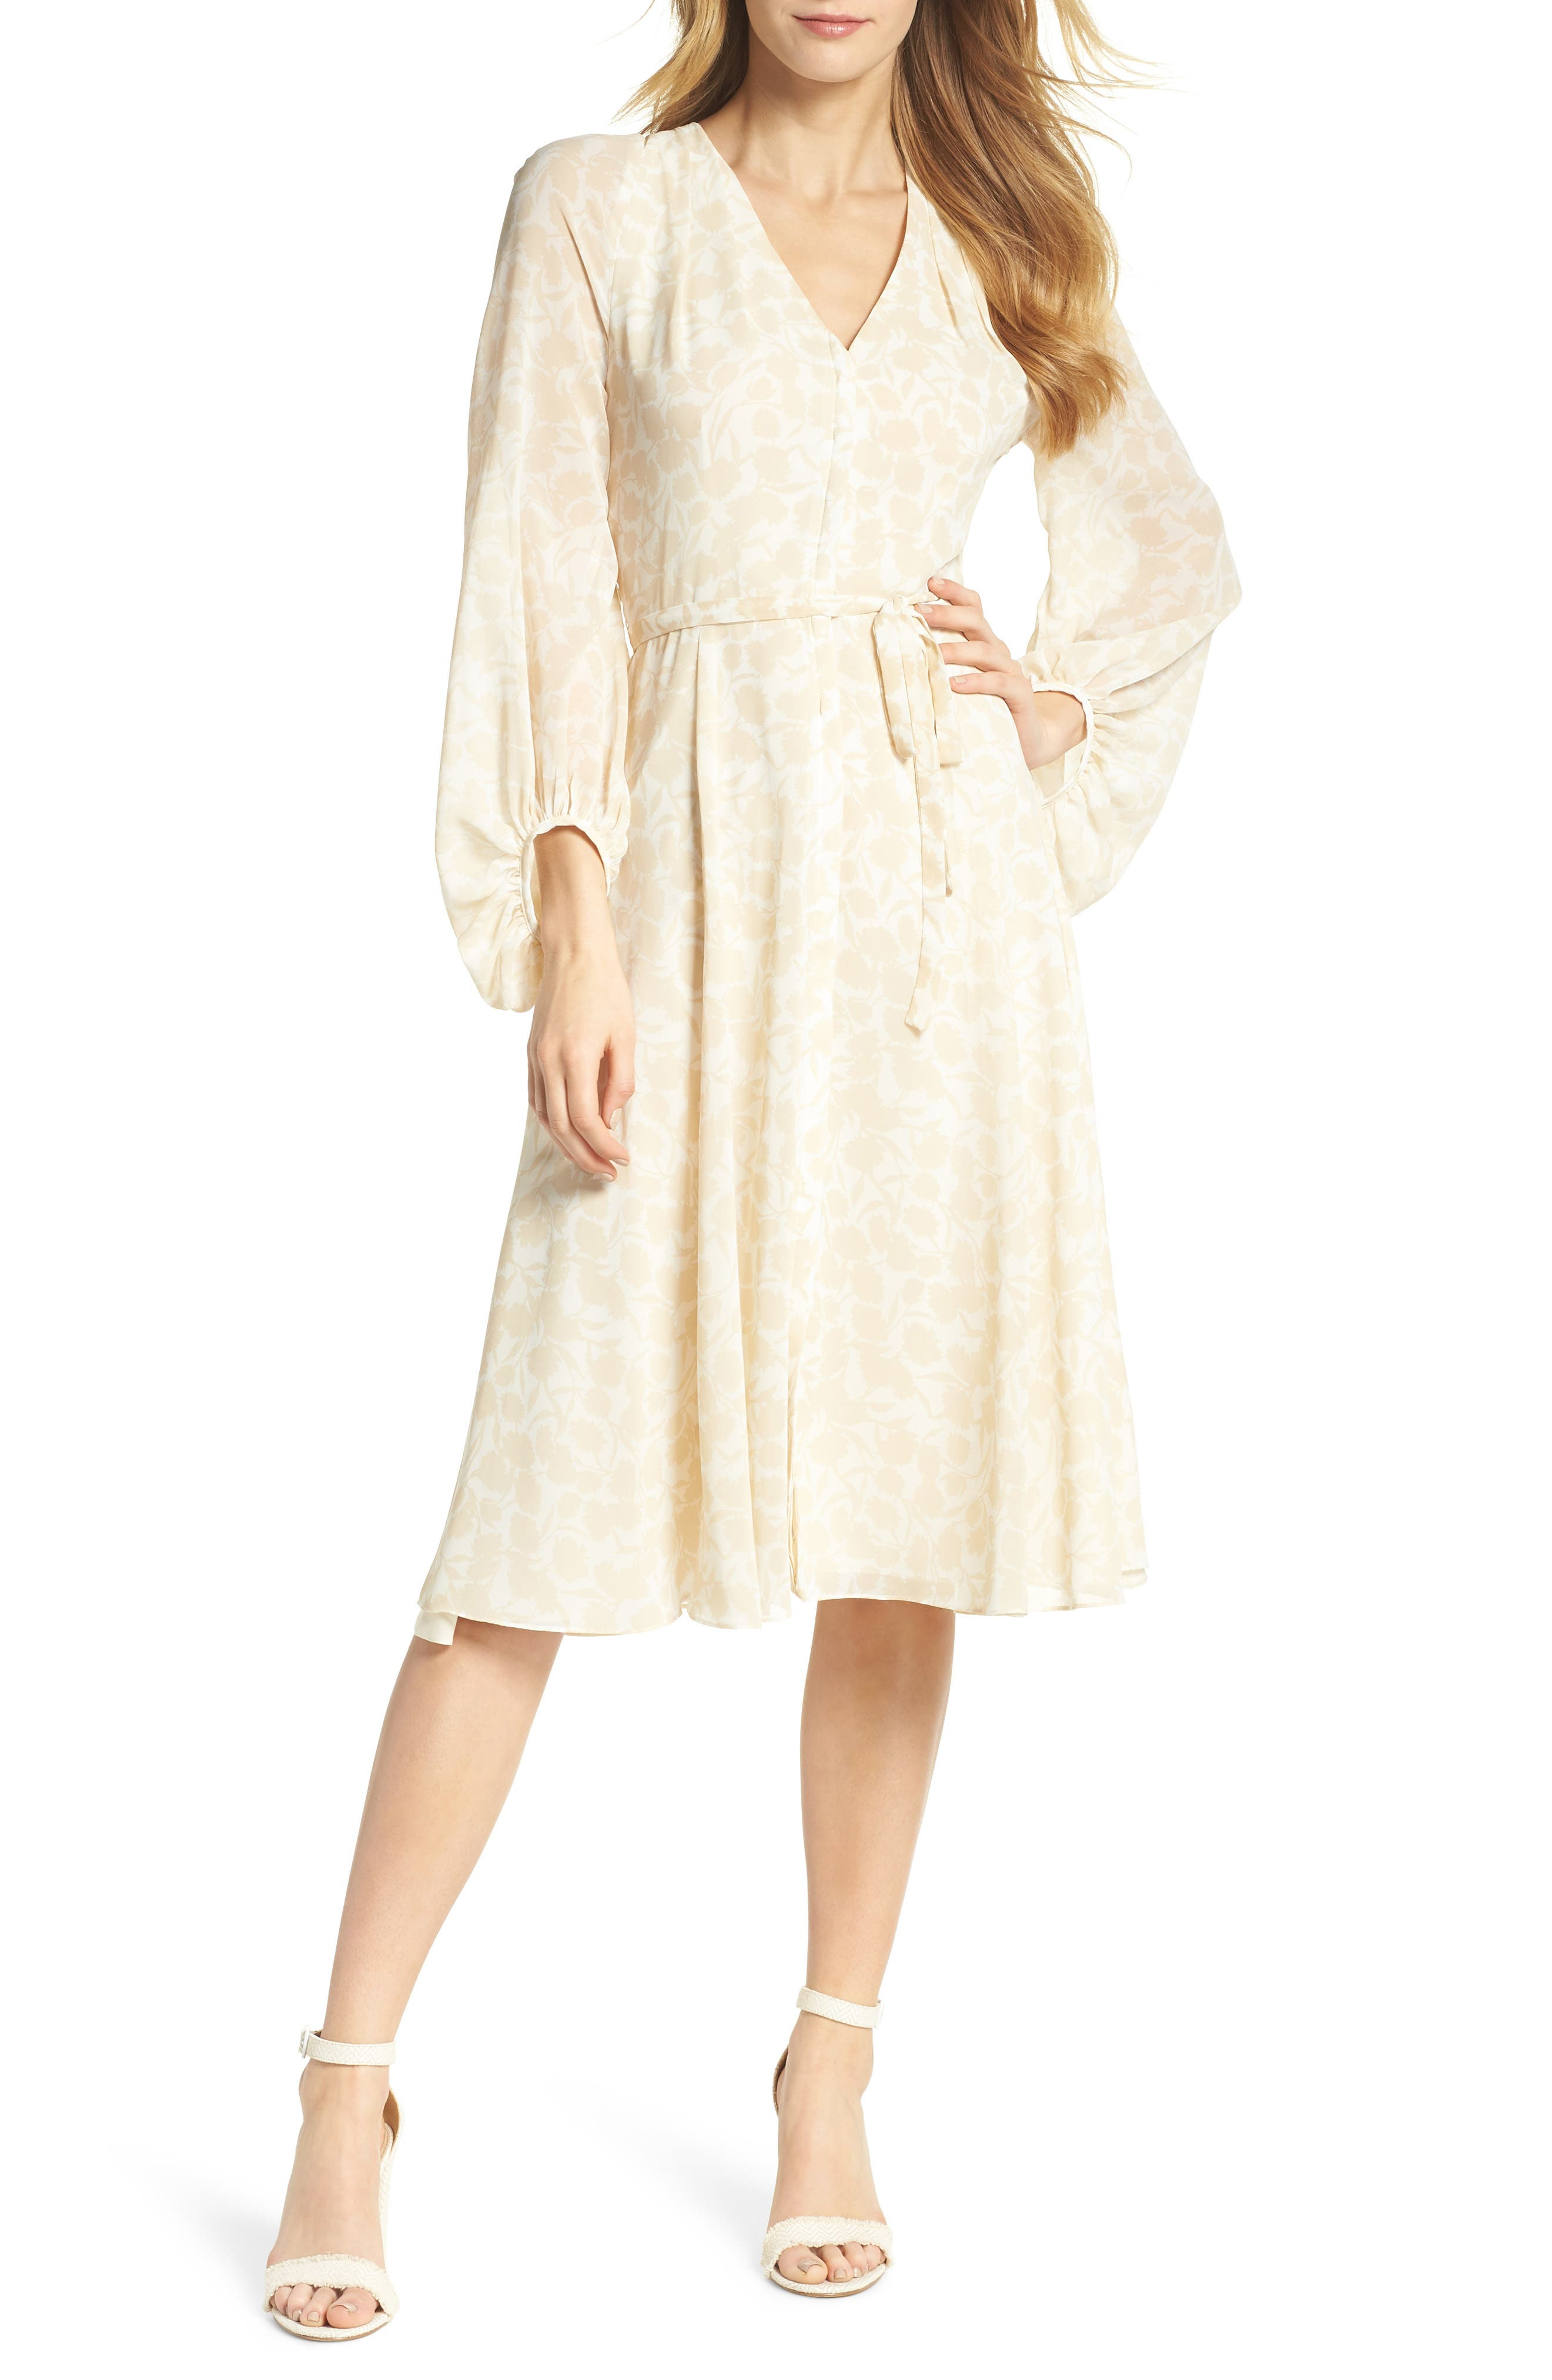 1930s Dresses | 30s Art Deco Dress Womens Gal Meets Glam Collection Esther Shadow Branch Chiffon Dress Size 16 - Ivory $106.80 AT vintagedancer.com